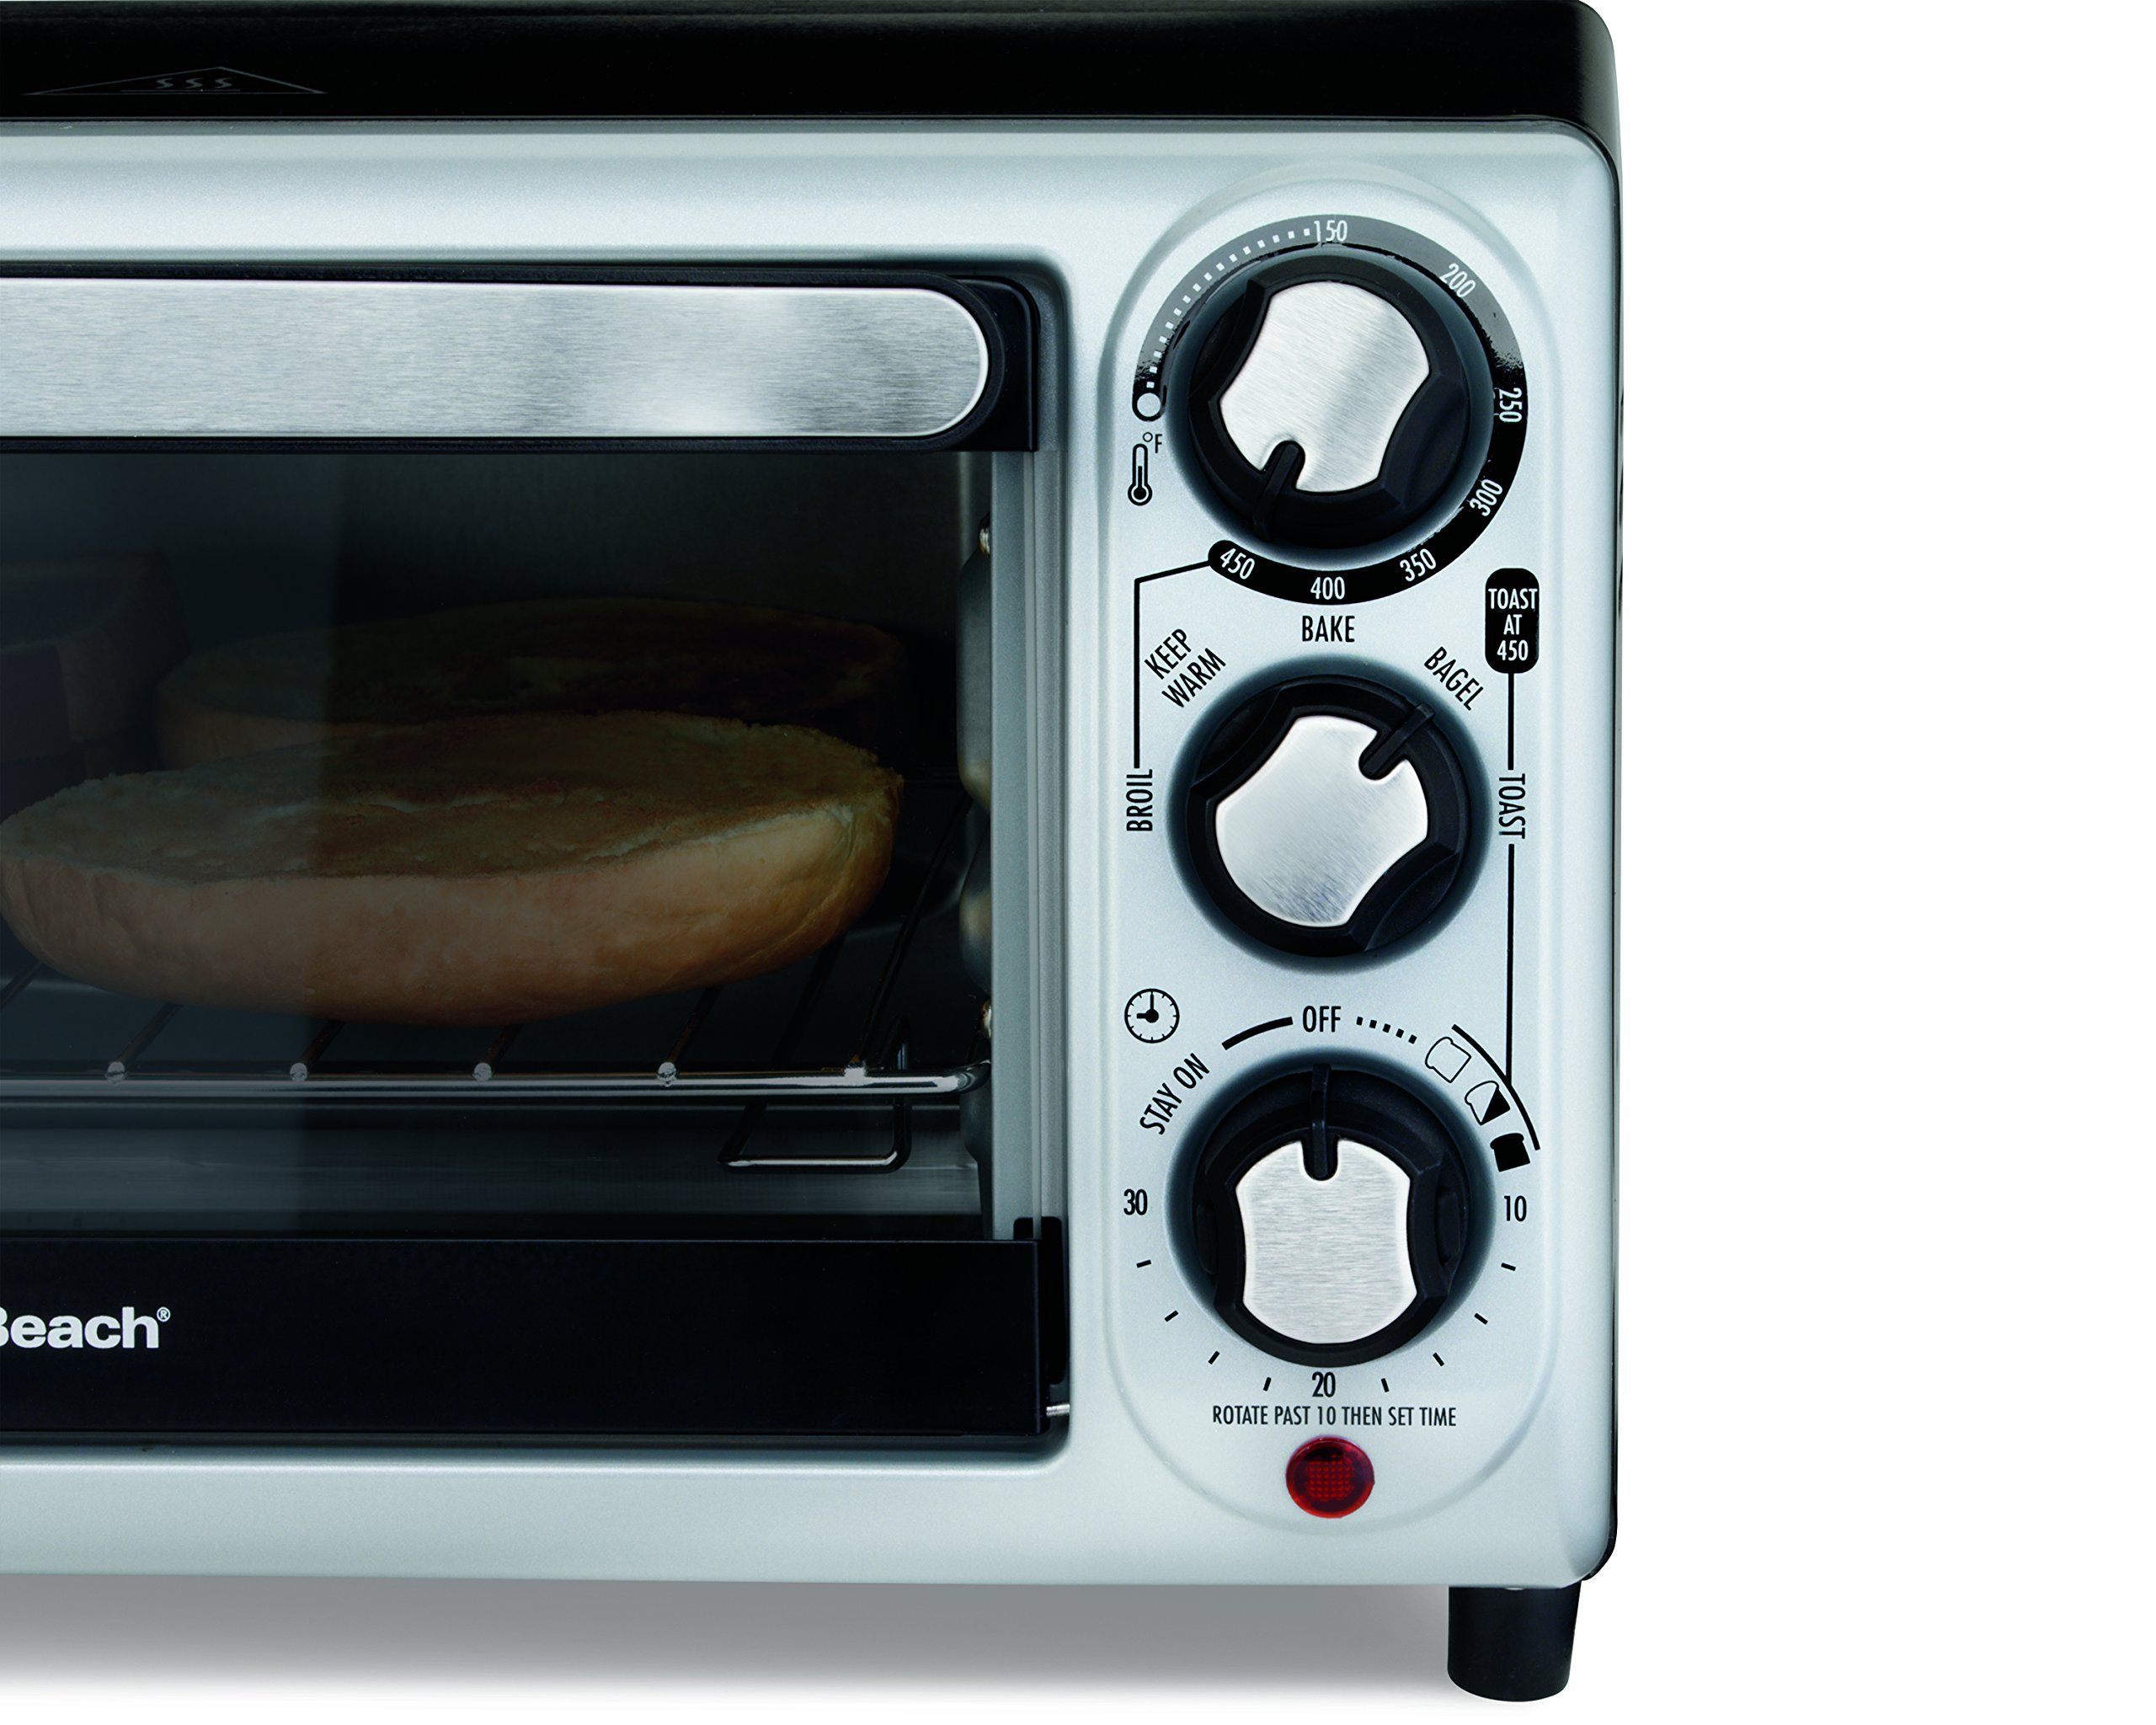 Hamilton Beach 31142 Toaster Oven Silver Details Can Be Found